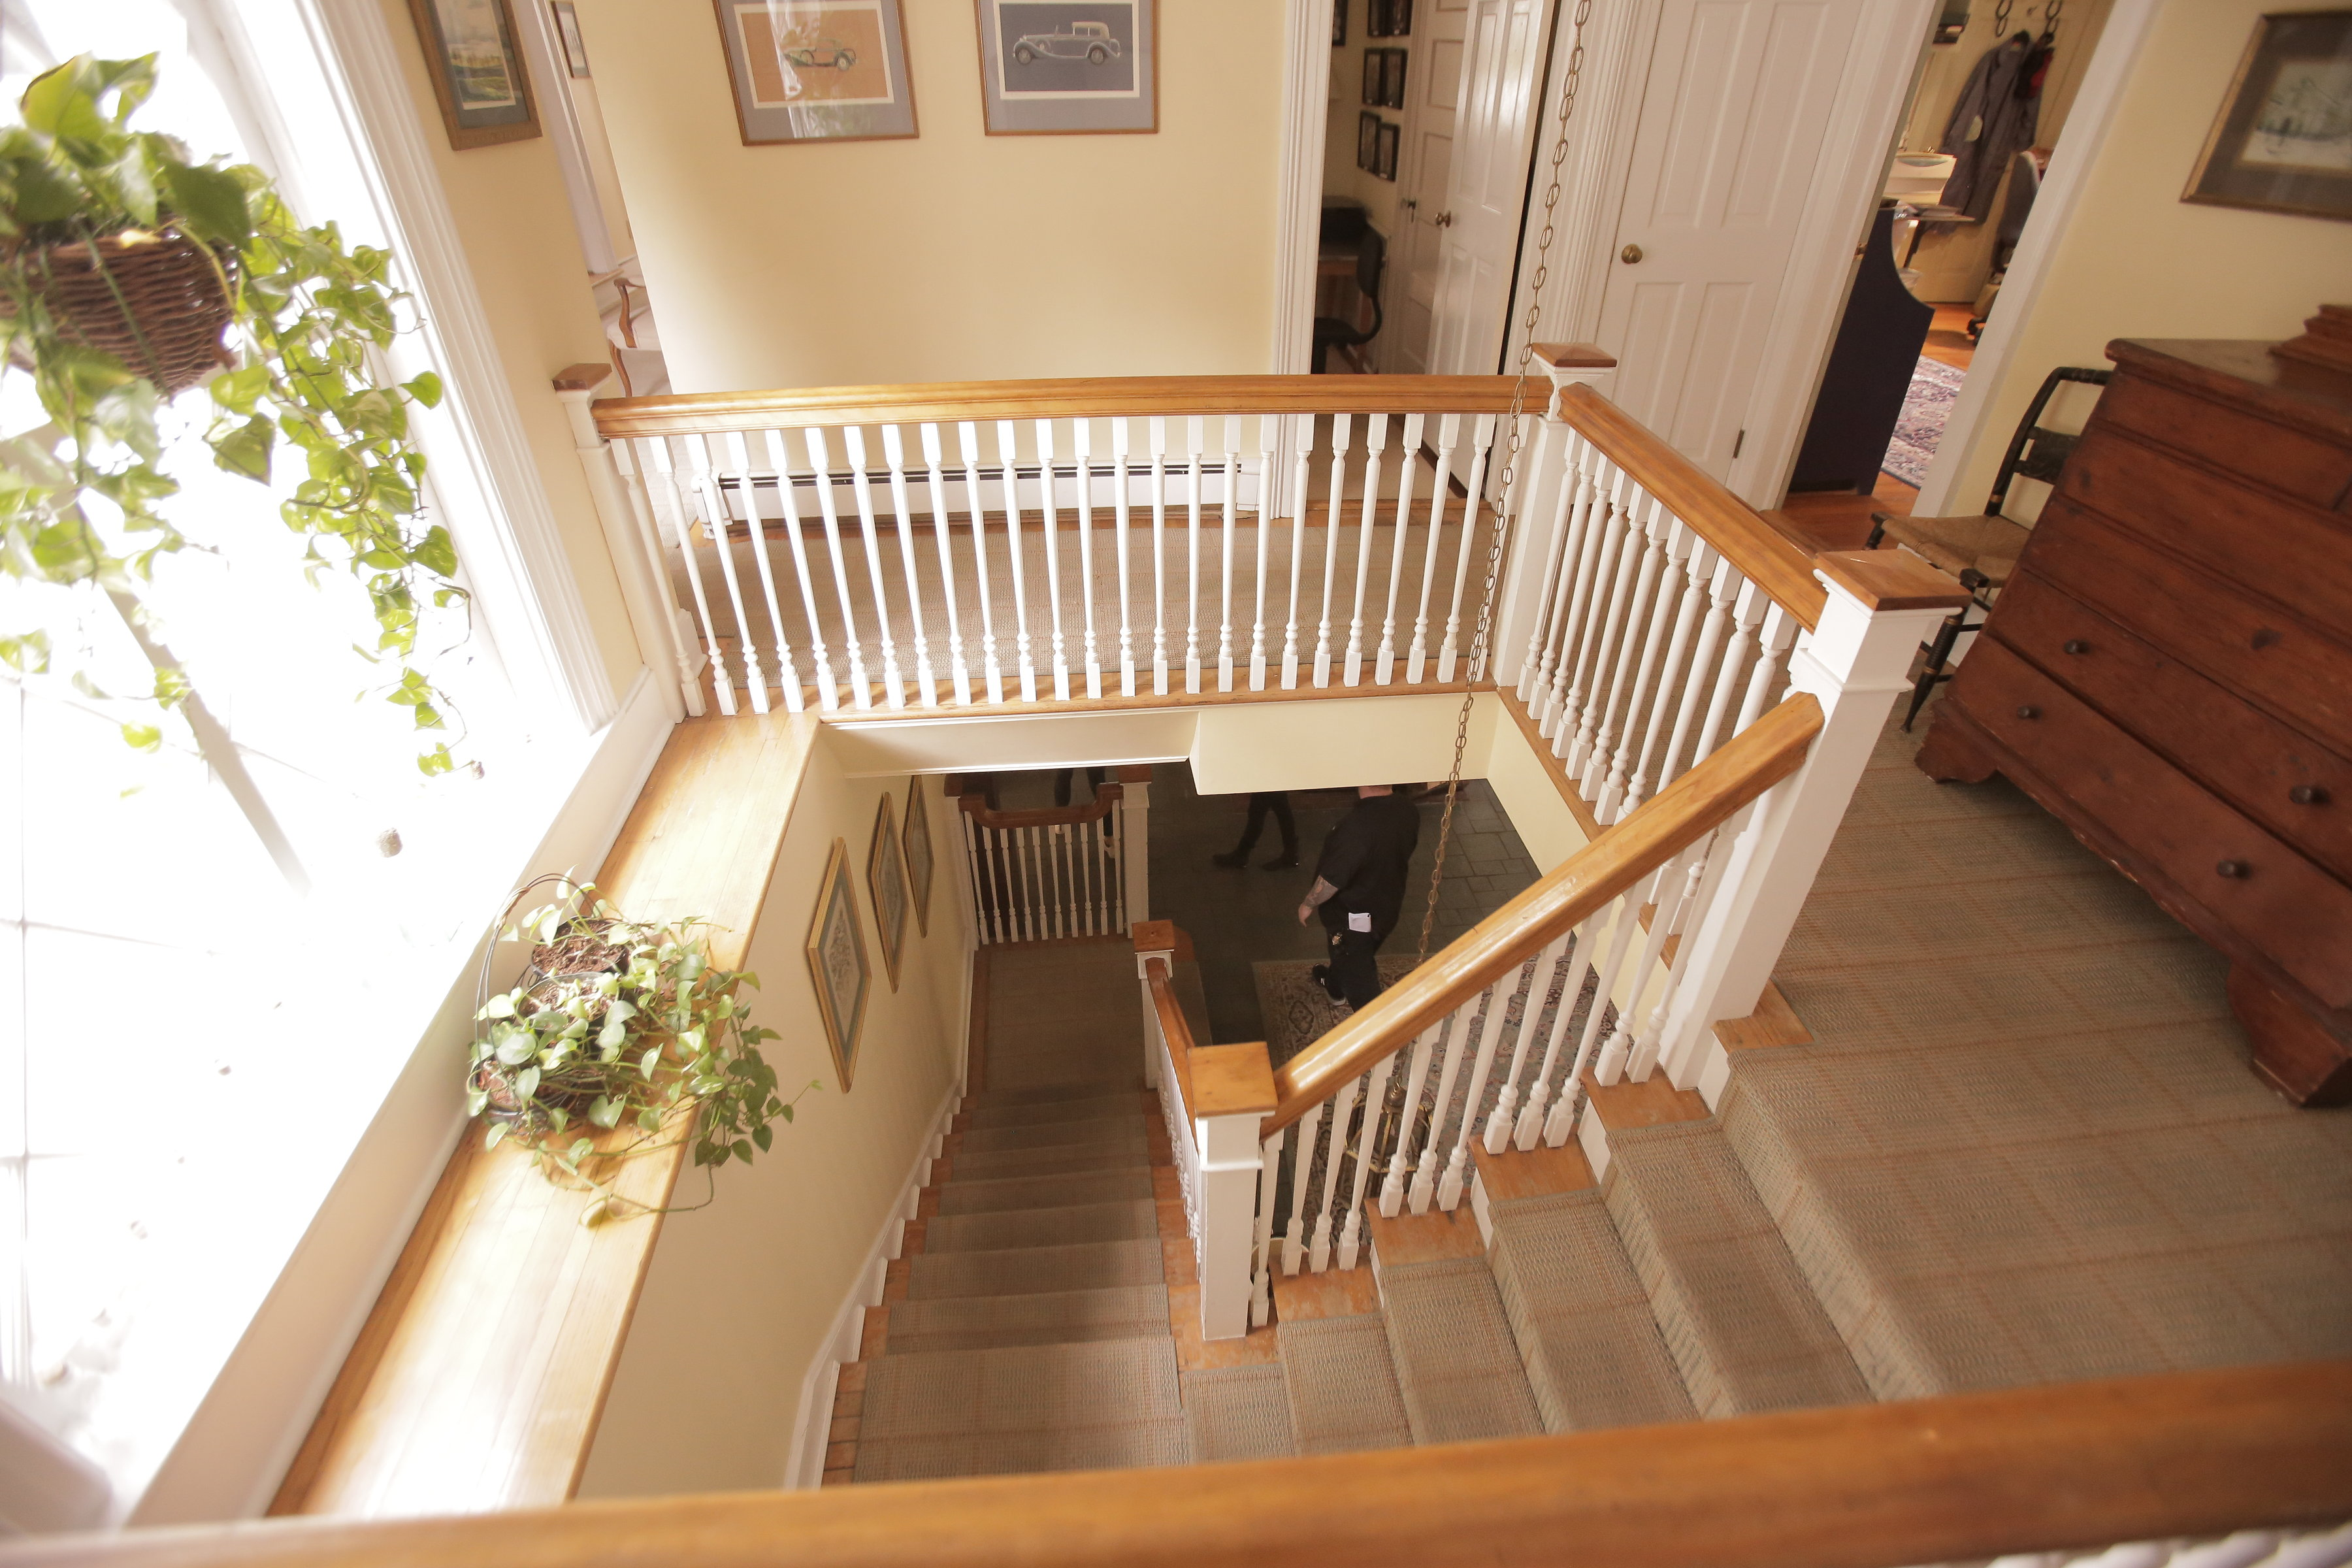 TOP OF STAIRCASE